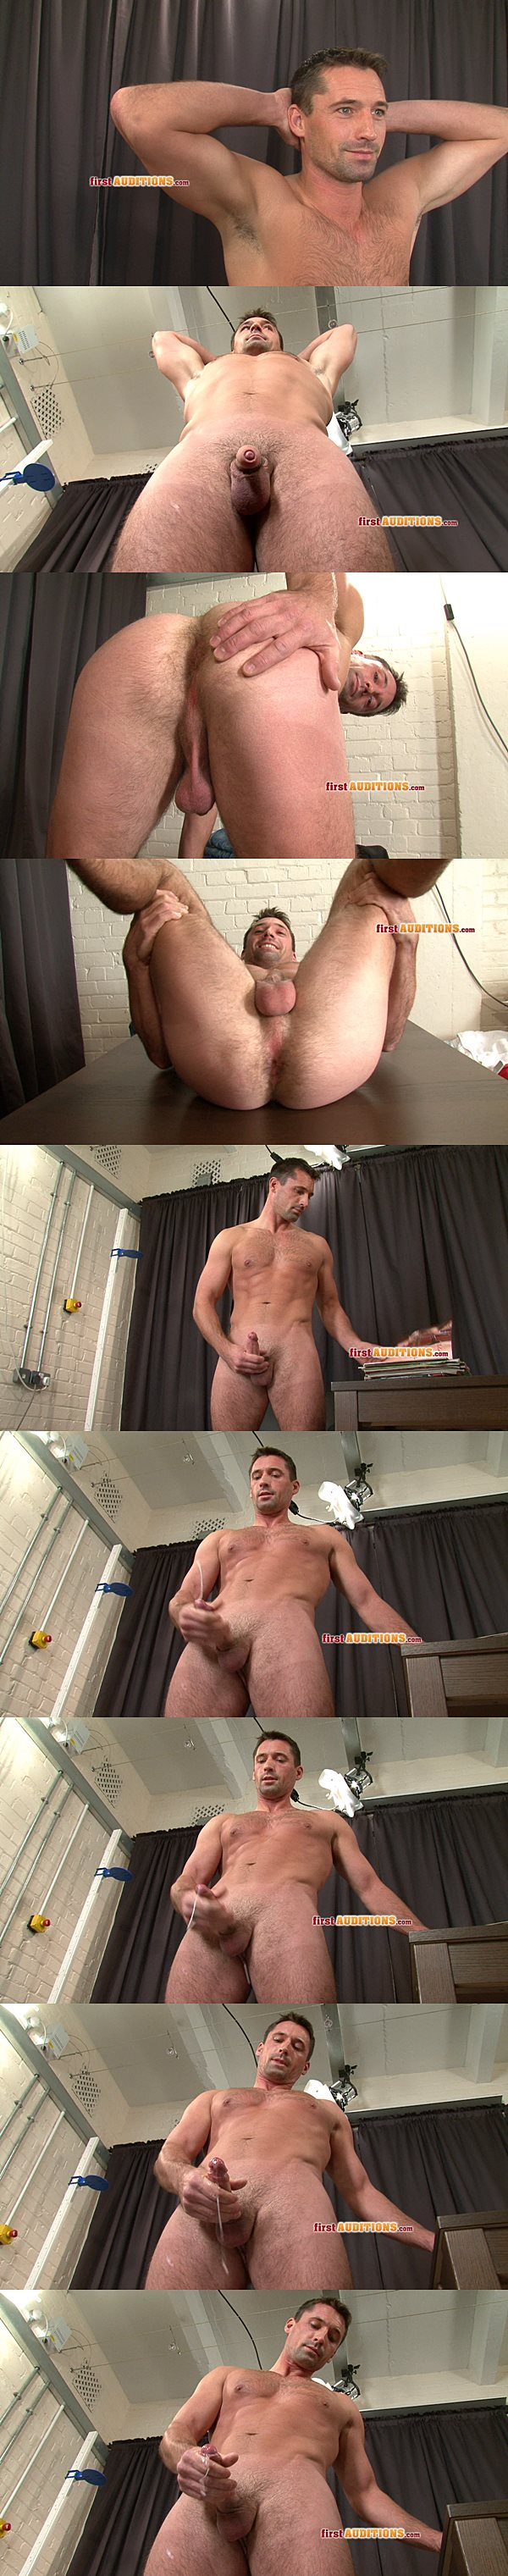 Handsome rugby player Justin shoots his creamy load at Thecastingroom